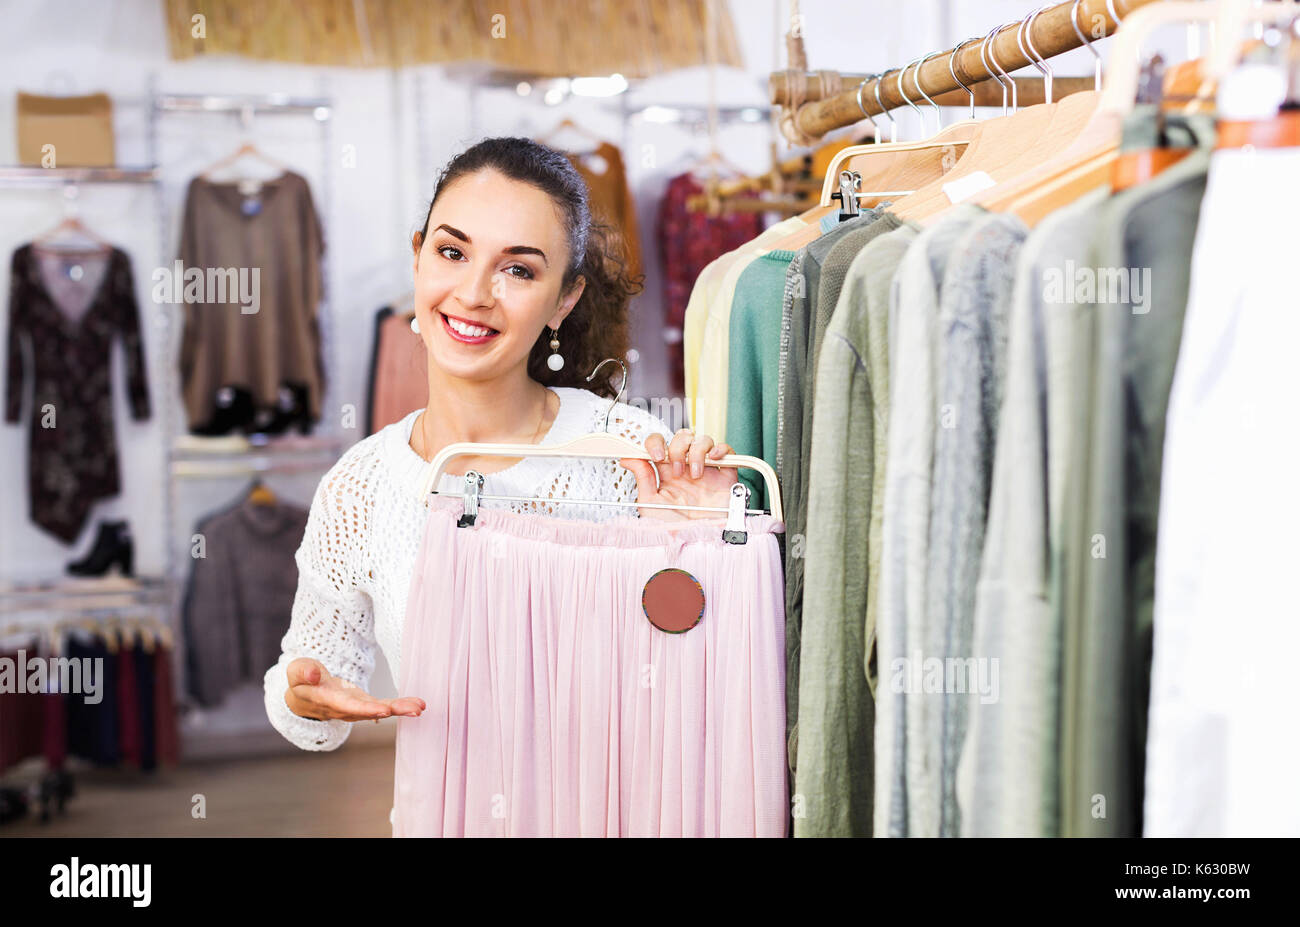 Smiling cheerful woman shopping skirts at the apparel store - Stock Image